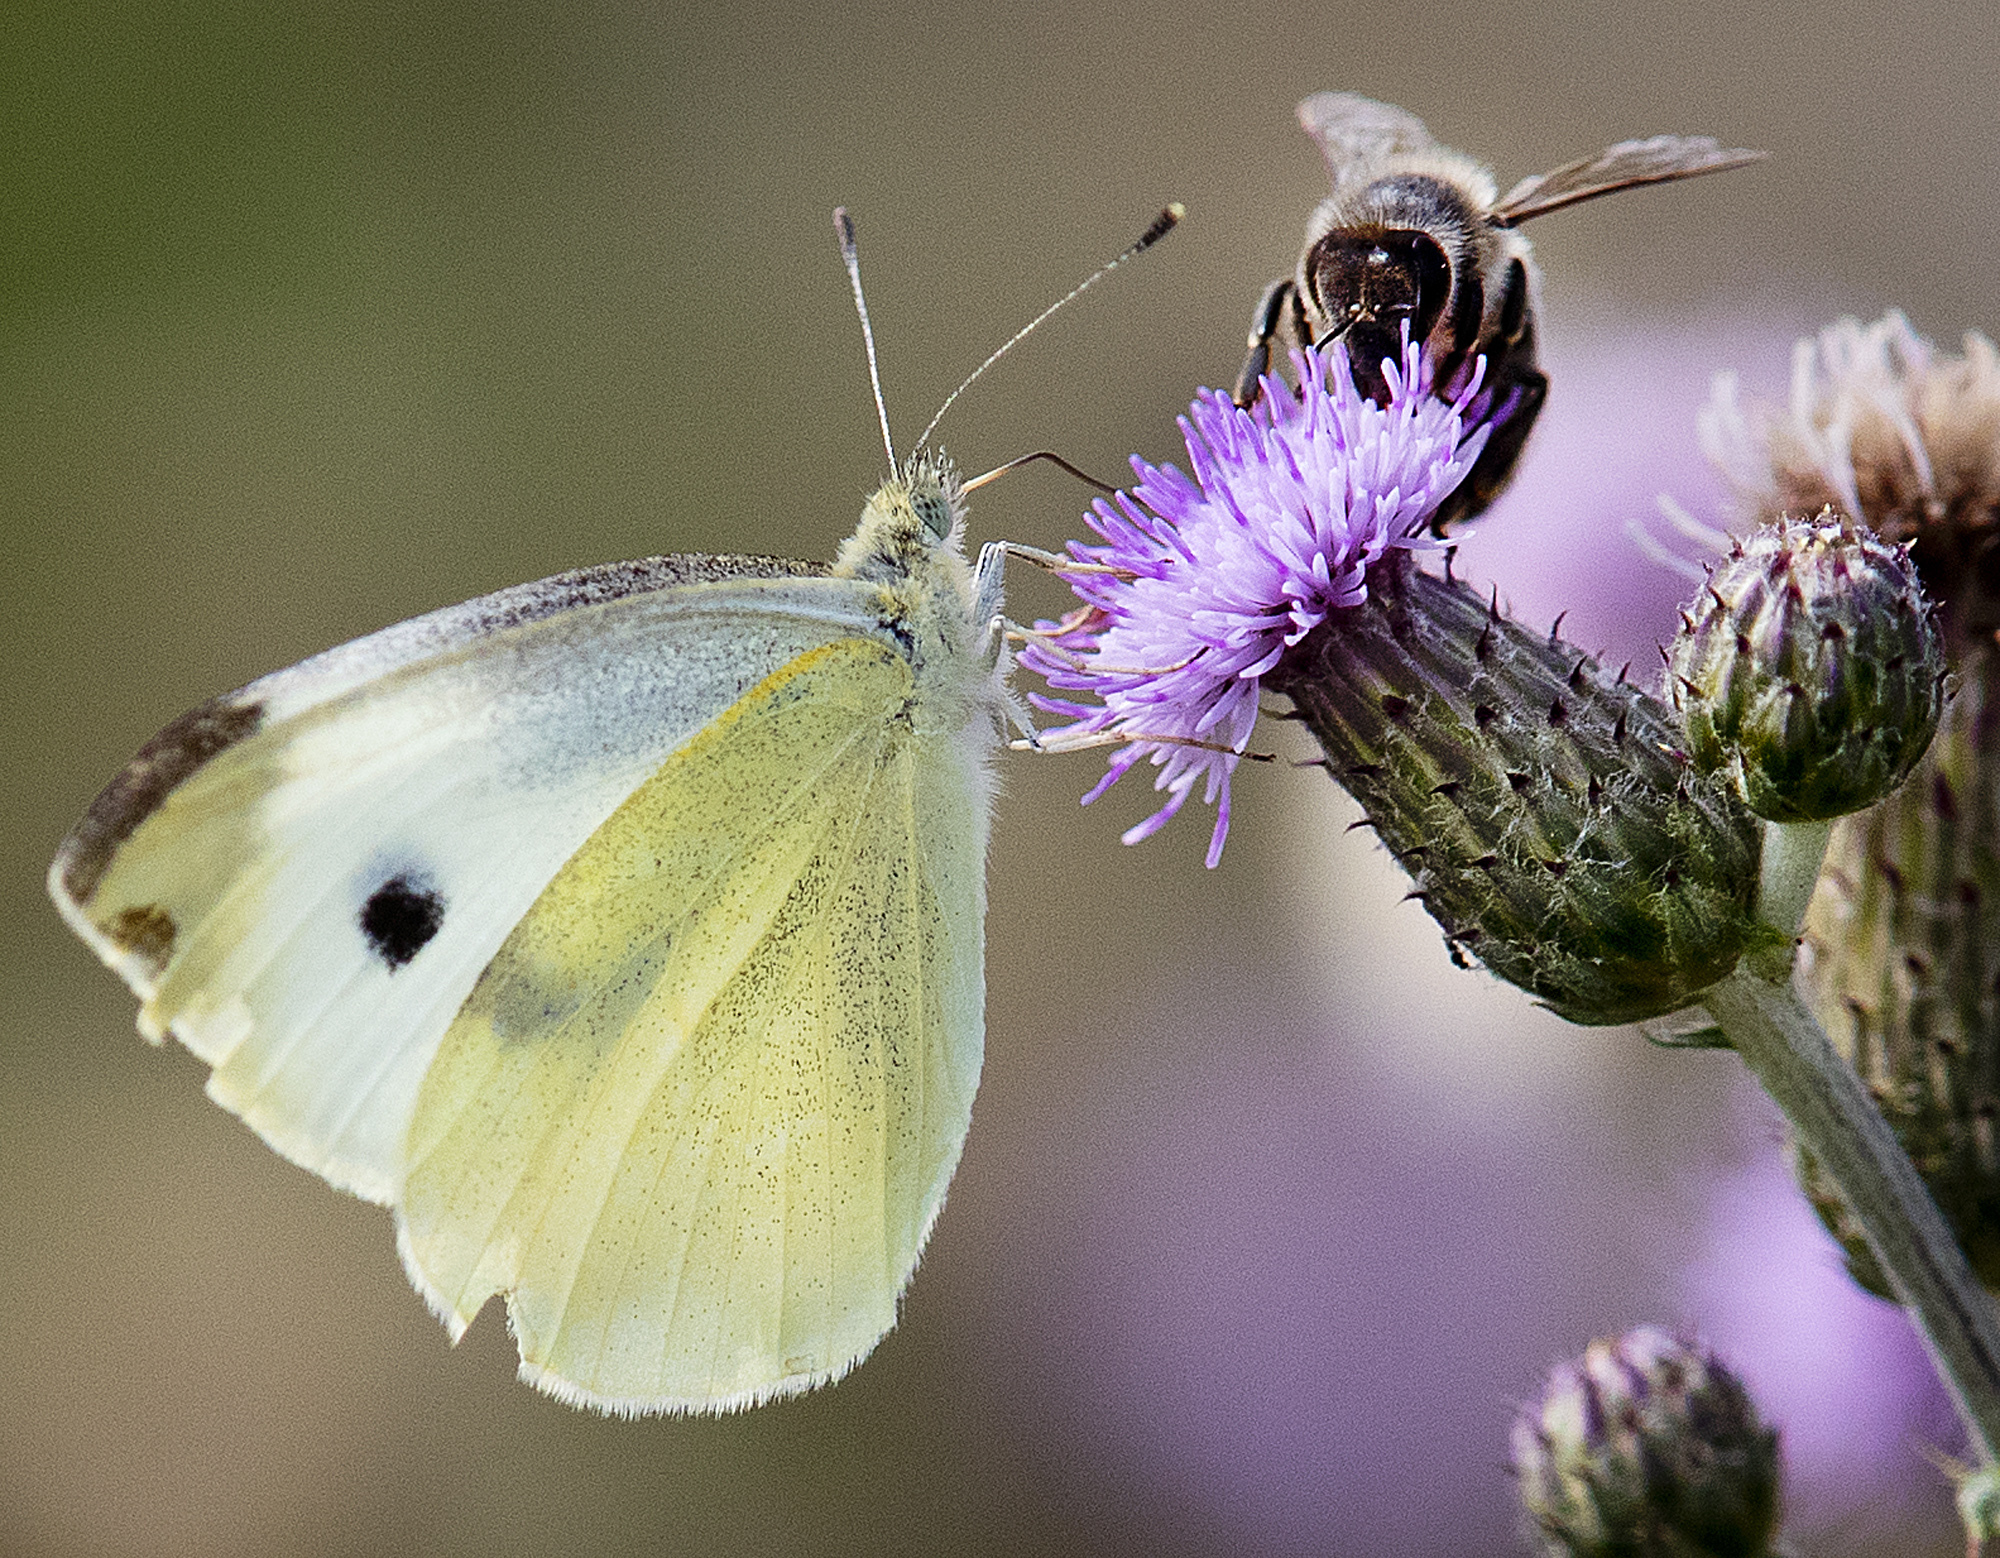 Photo: Bees and butterflies pollinating - AP Photo